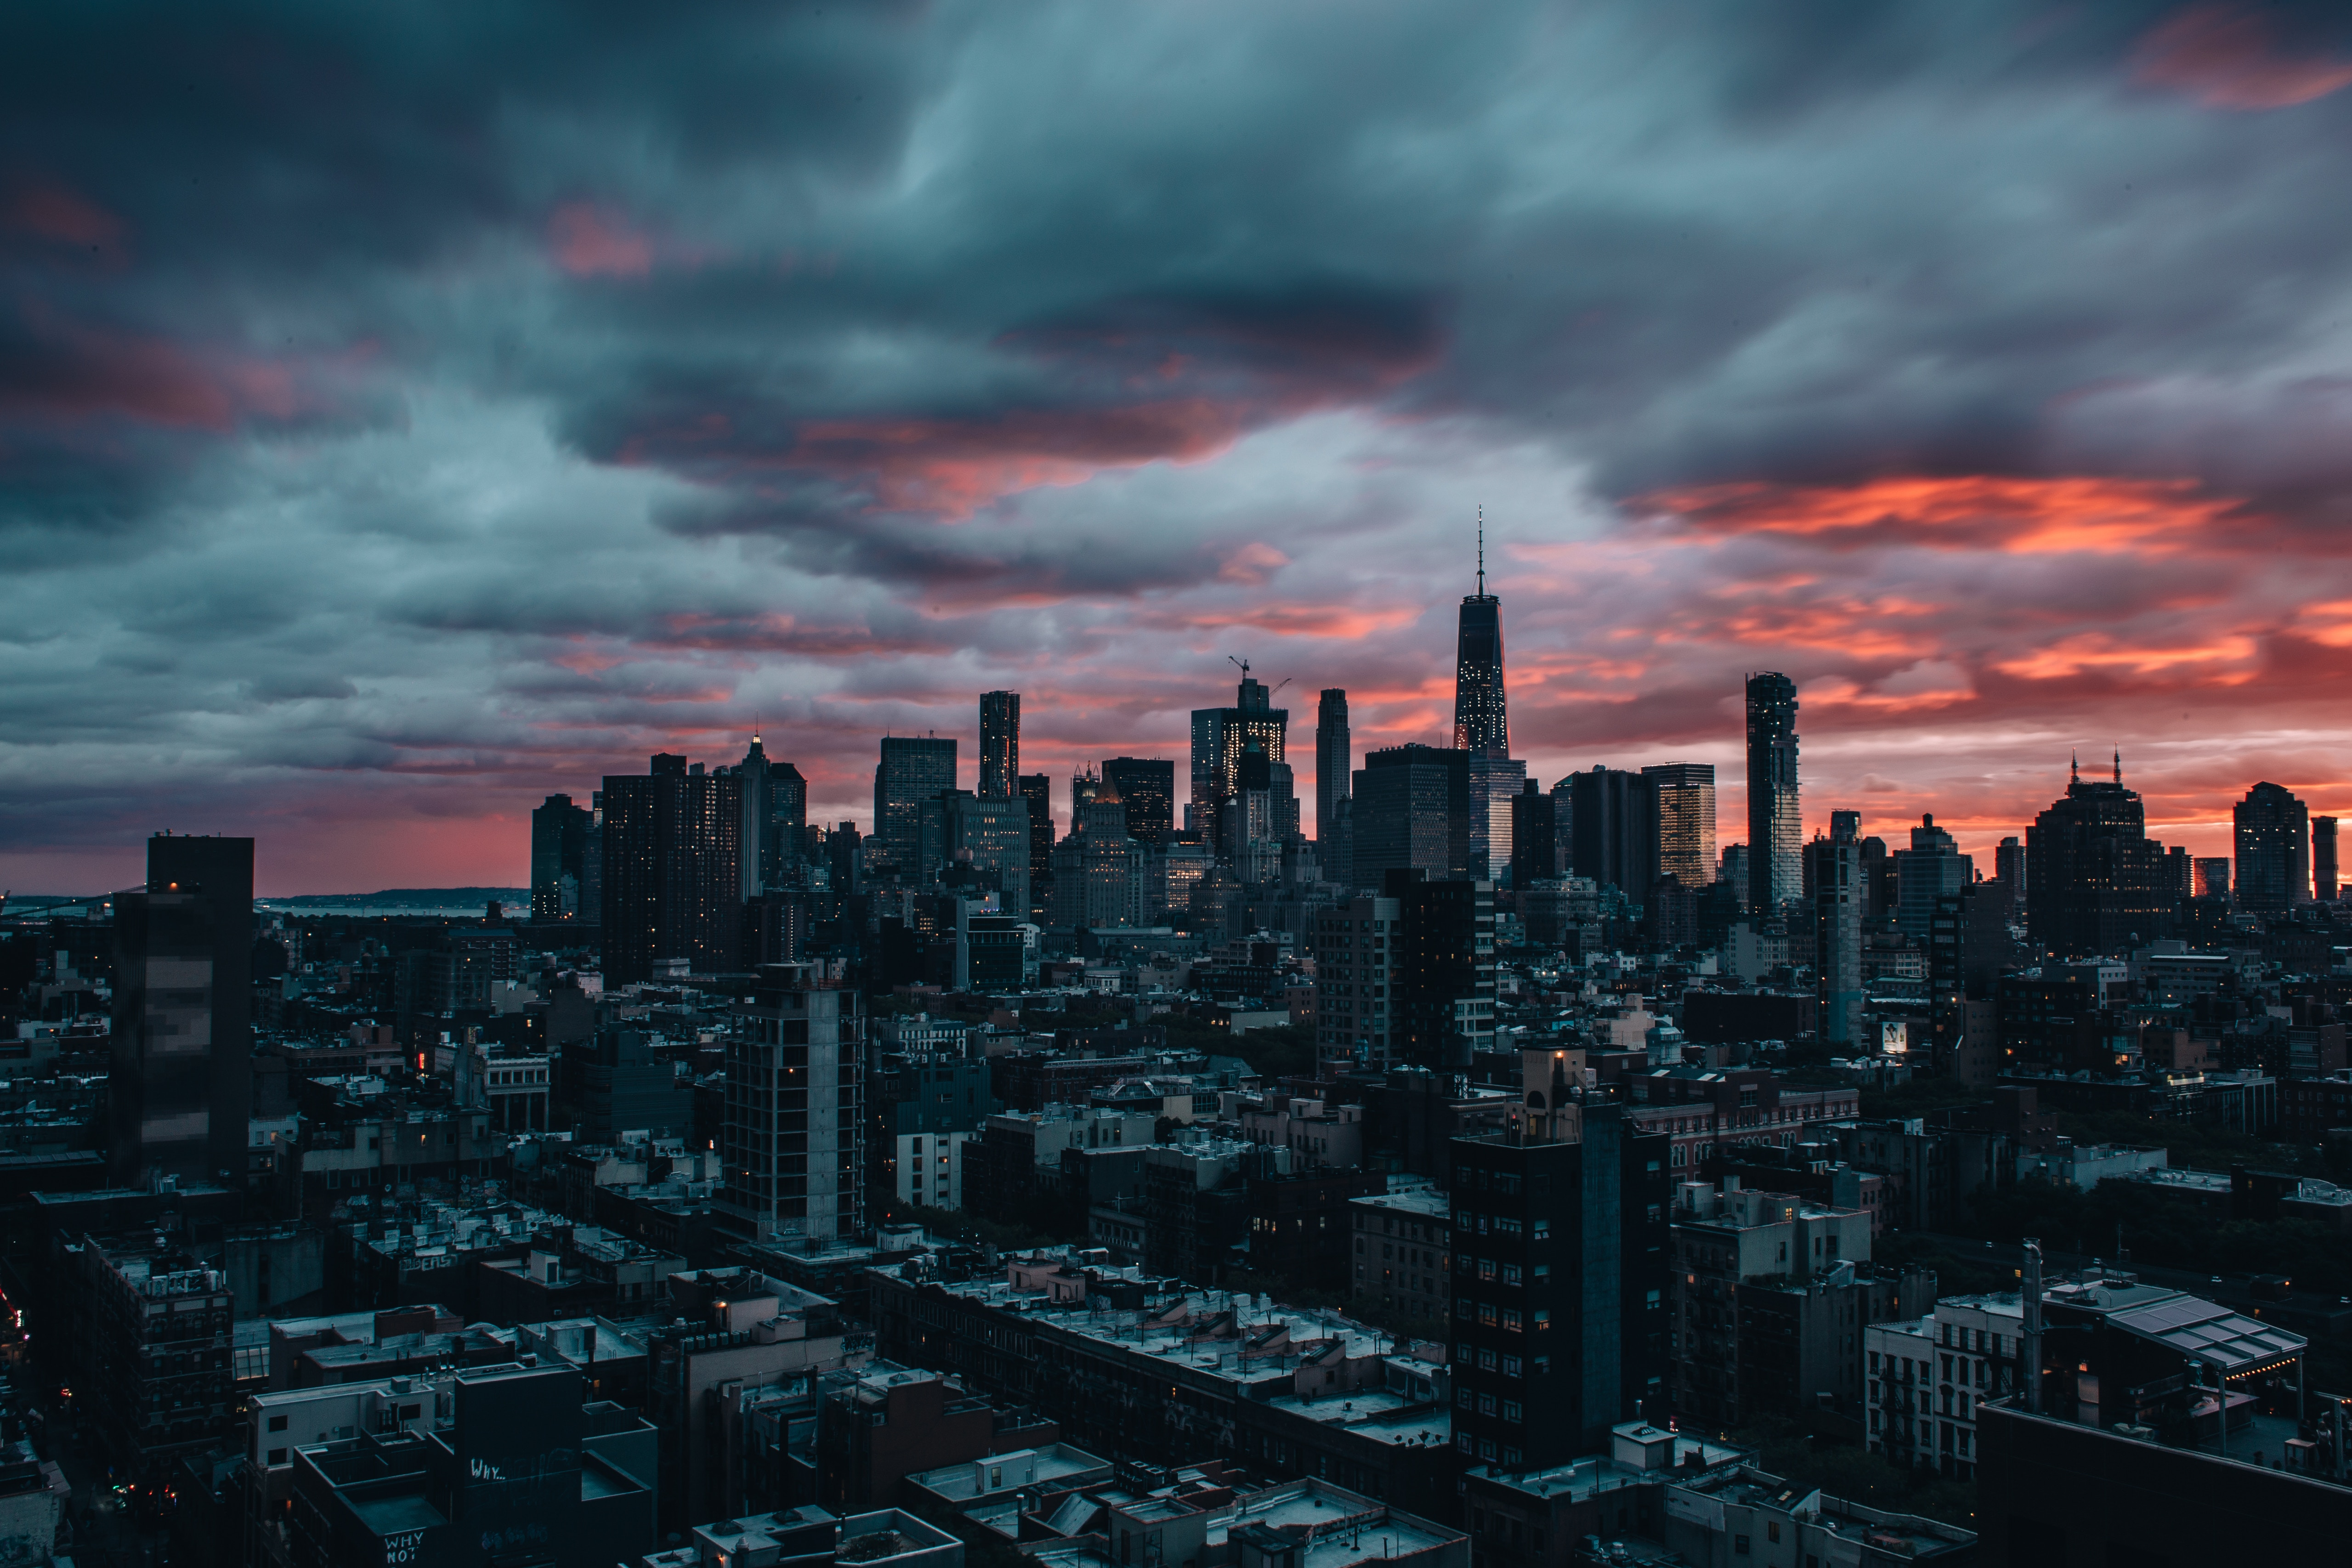 109019 download wallpaper Skyscrapers, Dusk, Twilight, City, Clouds, New York, Cities screensavers and pictures for free